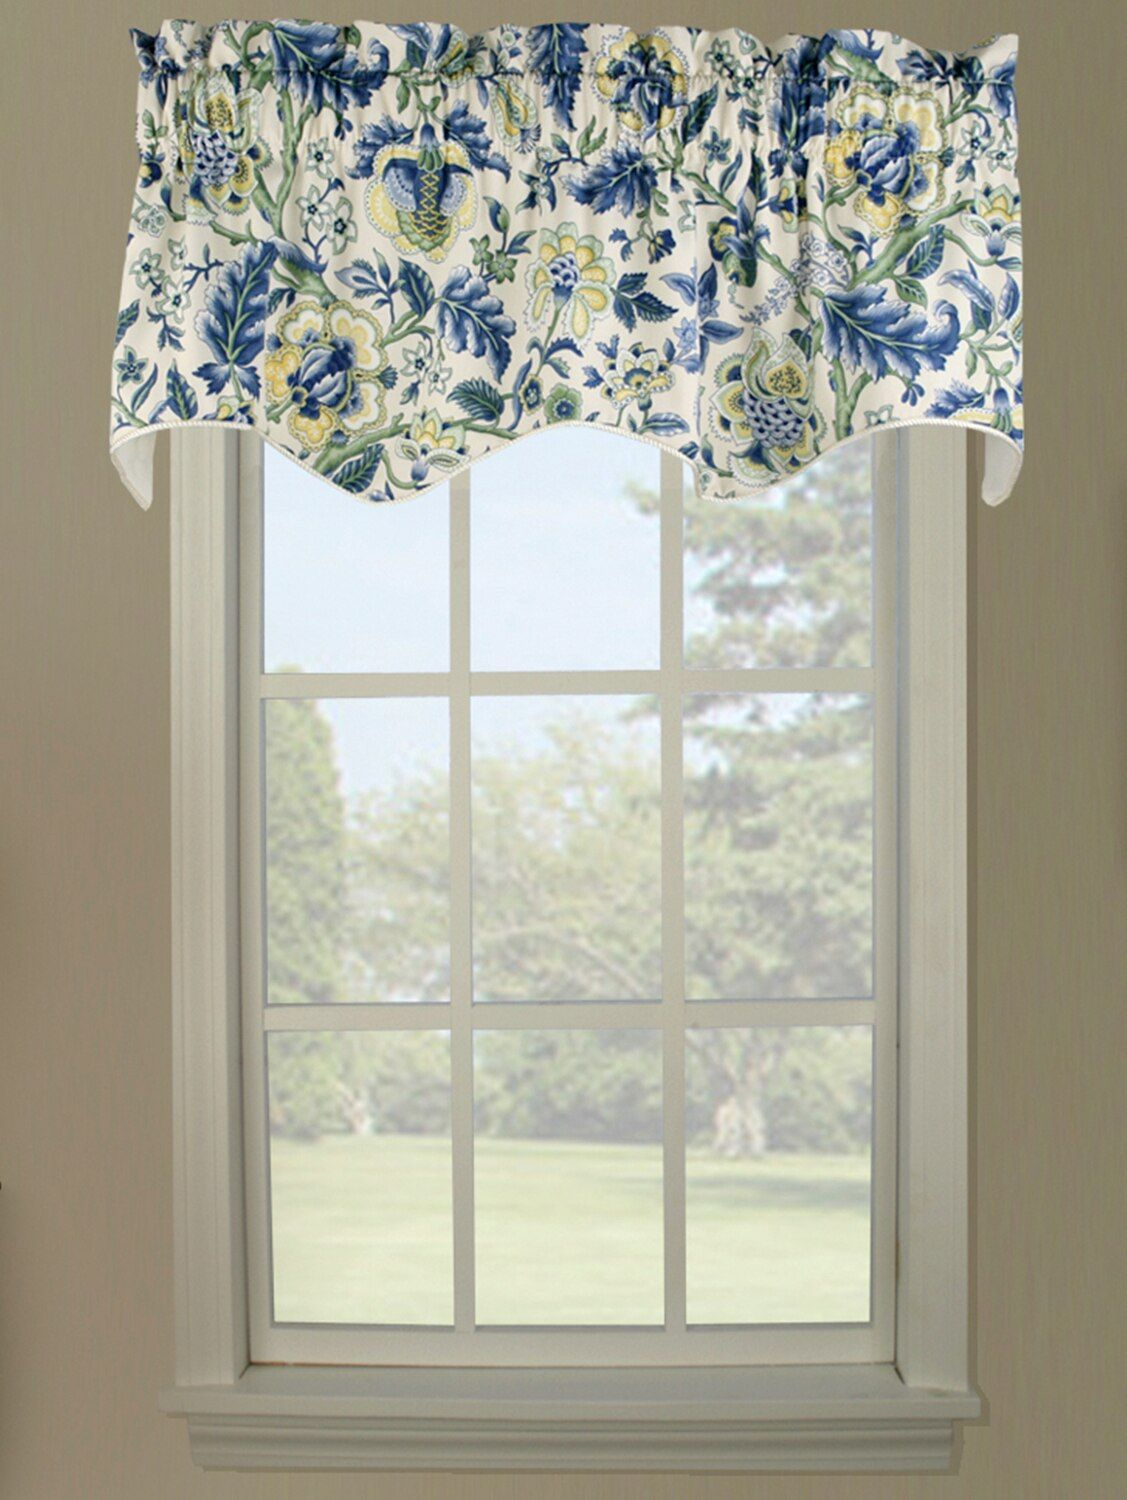 Pin By Tricia Heininge On Windows Valance Patterned Window